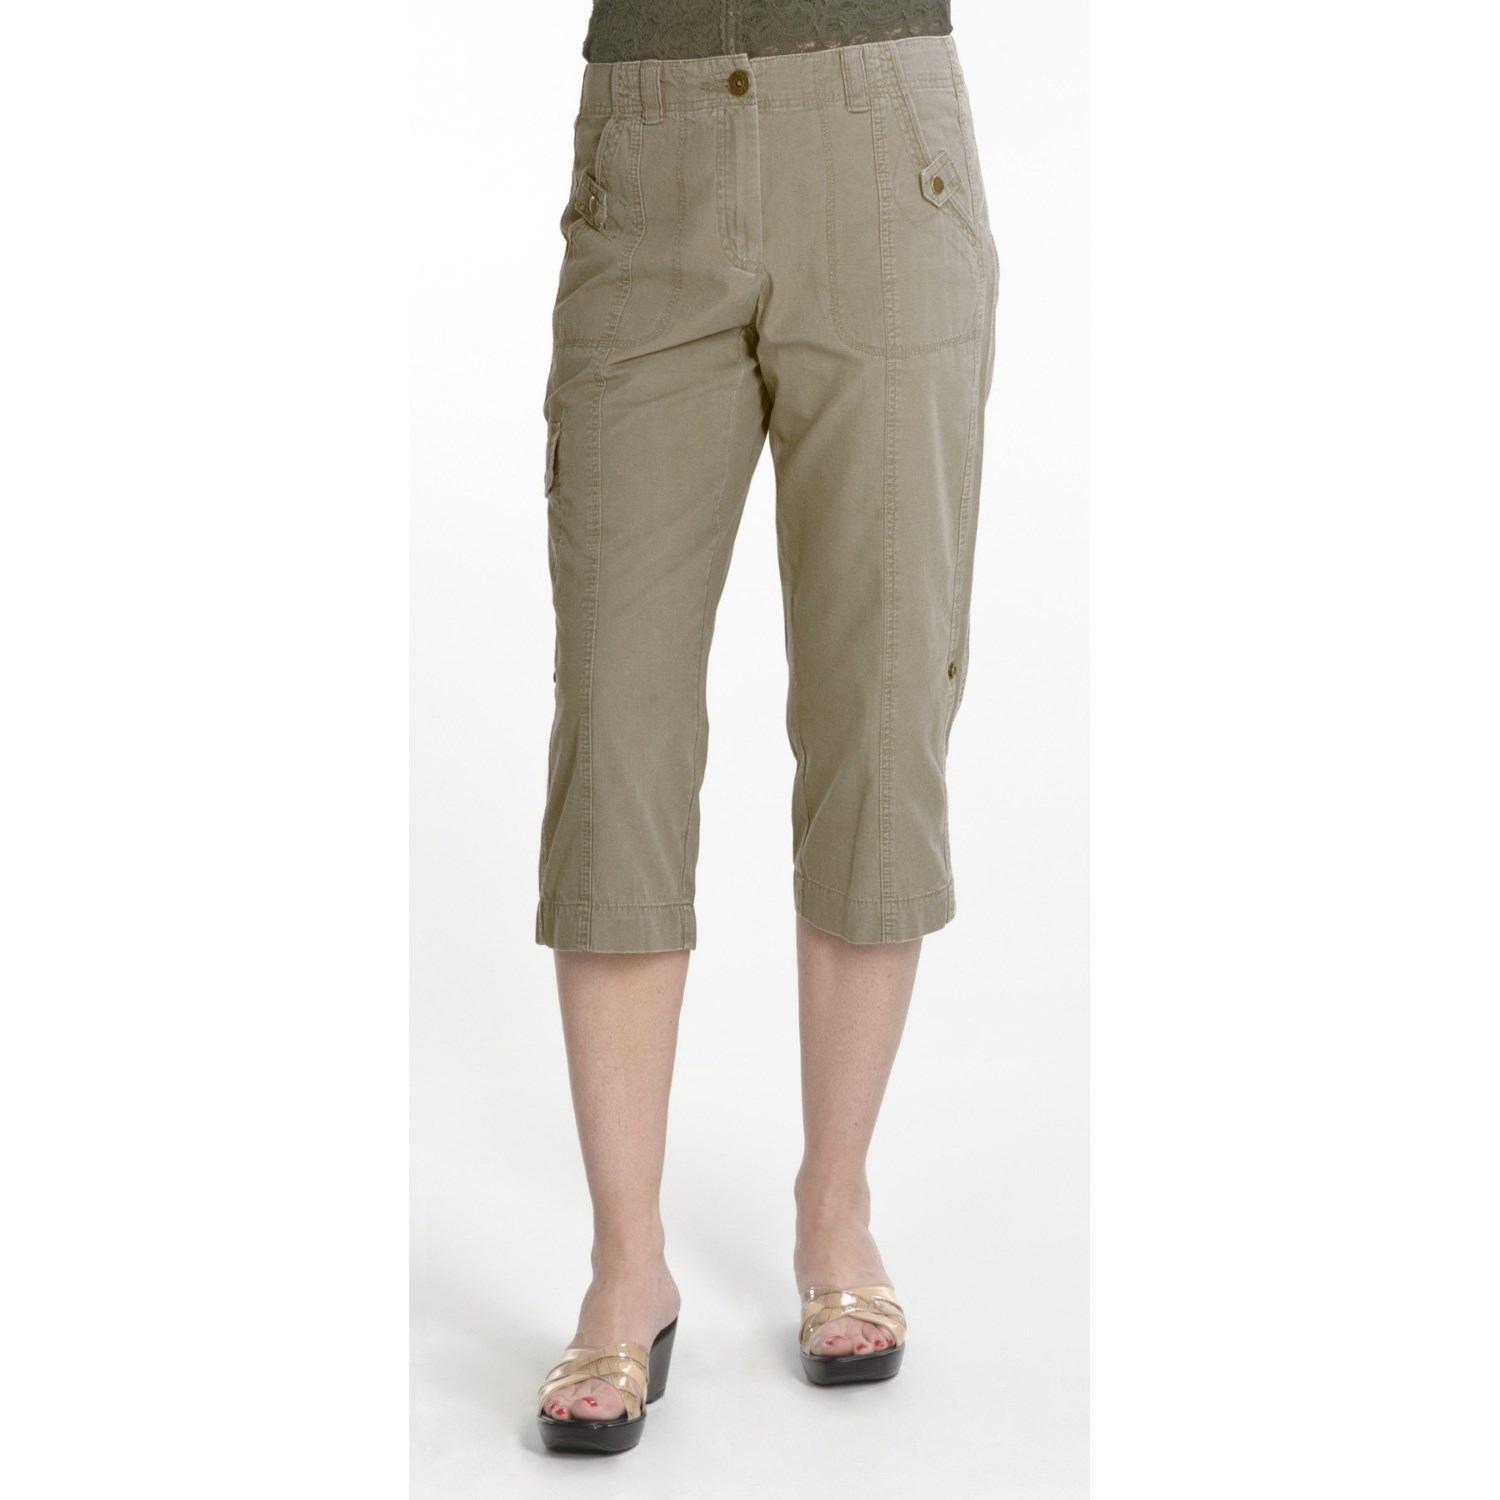 Capris. Shape up your wardrobe with fashionable bottoms like capris. With amazing styles for casual wear, exercising and even for the office, you're sure to find the perfect pants for pairing with any types of tops. Bring a versatile piece into your workweek rotation and add capris to your closet.